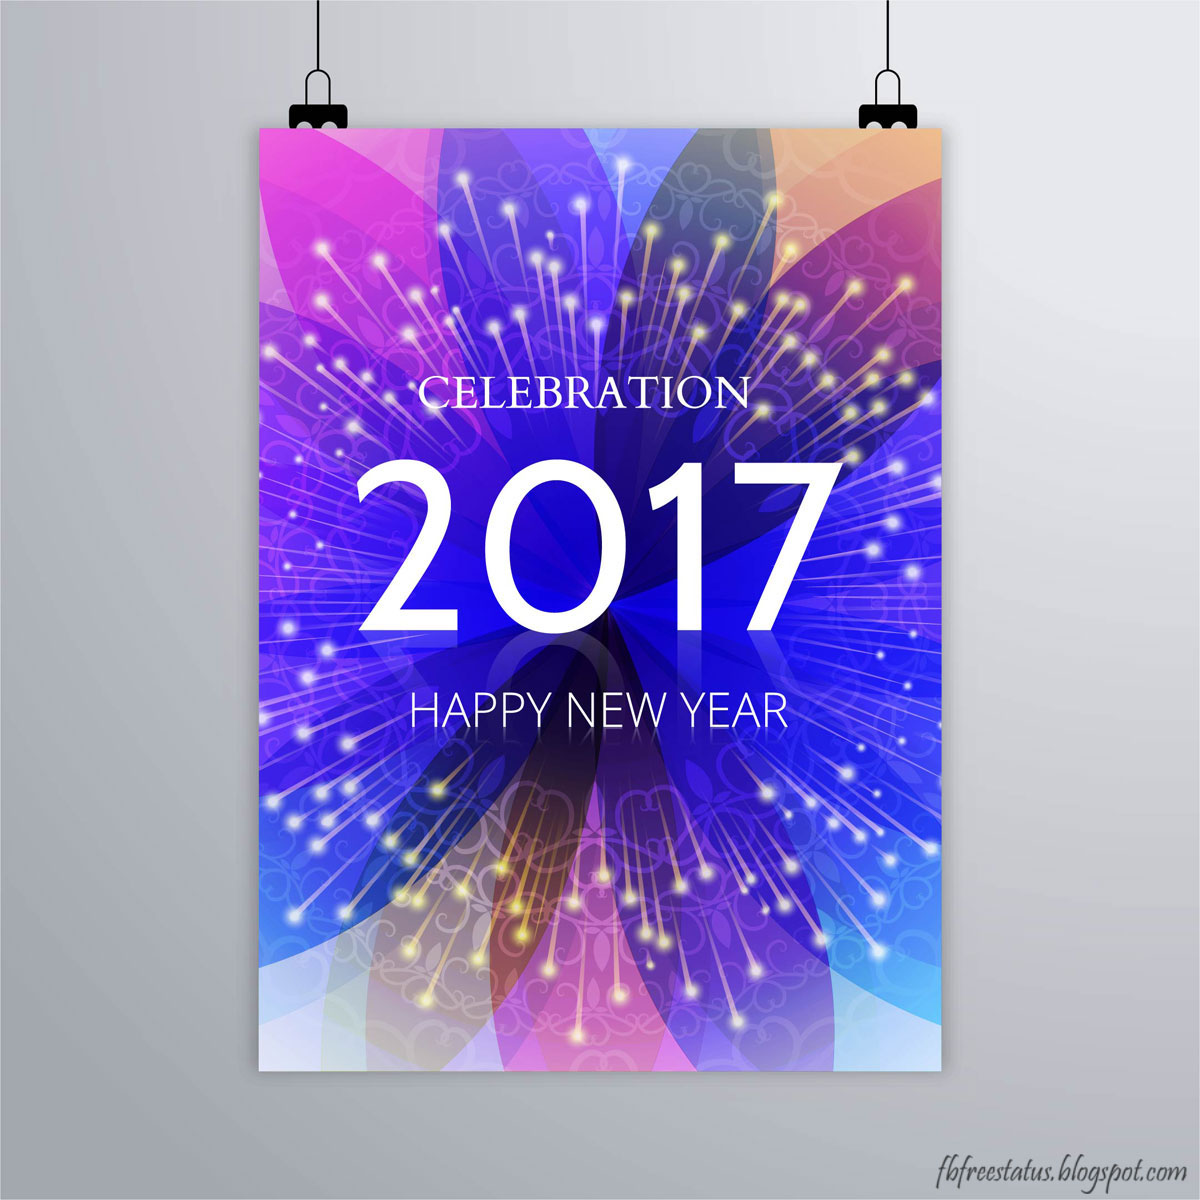 New Year Images high Resolution